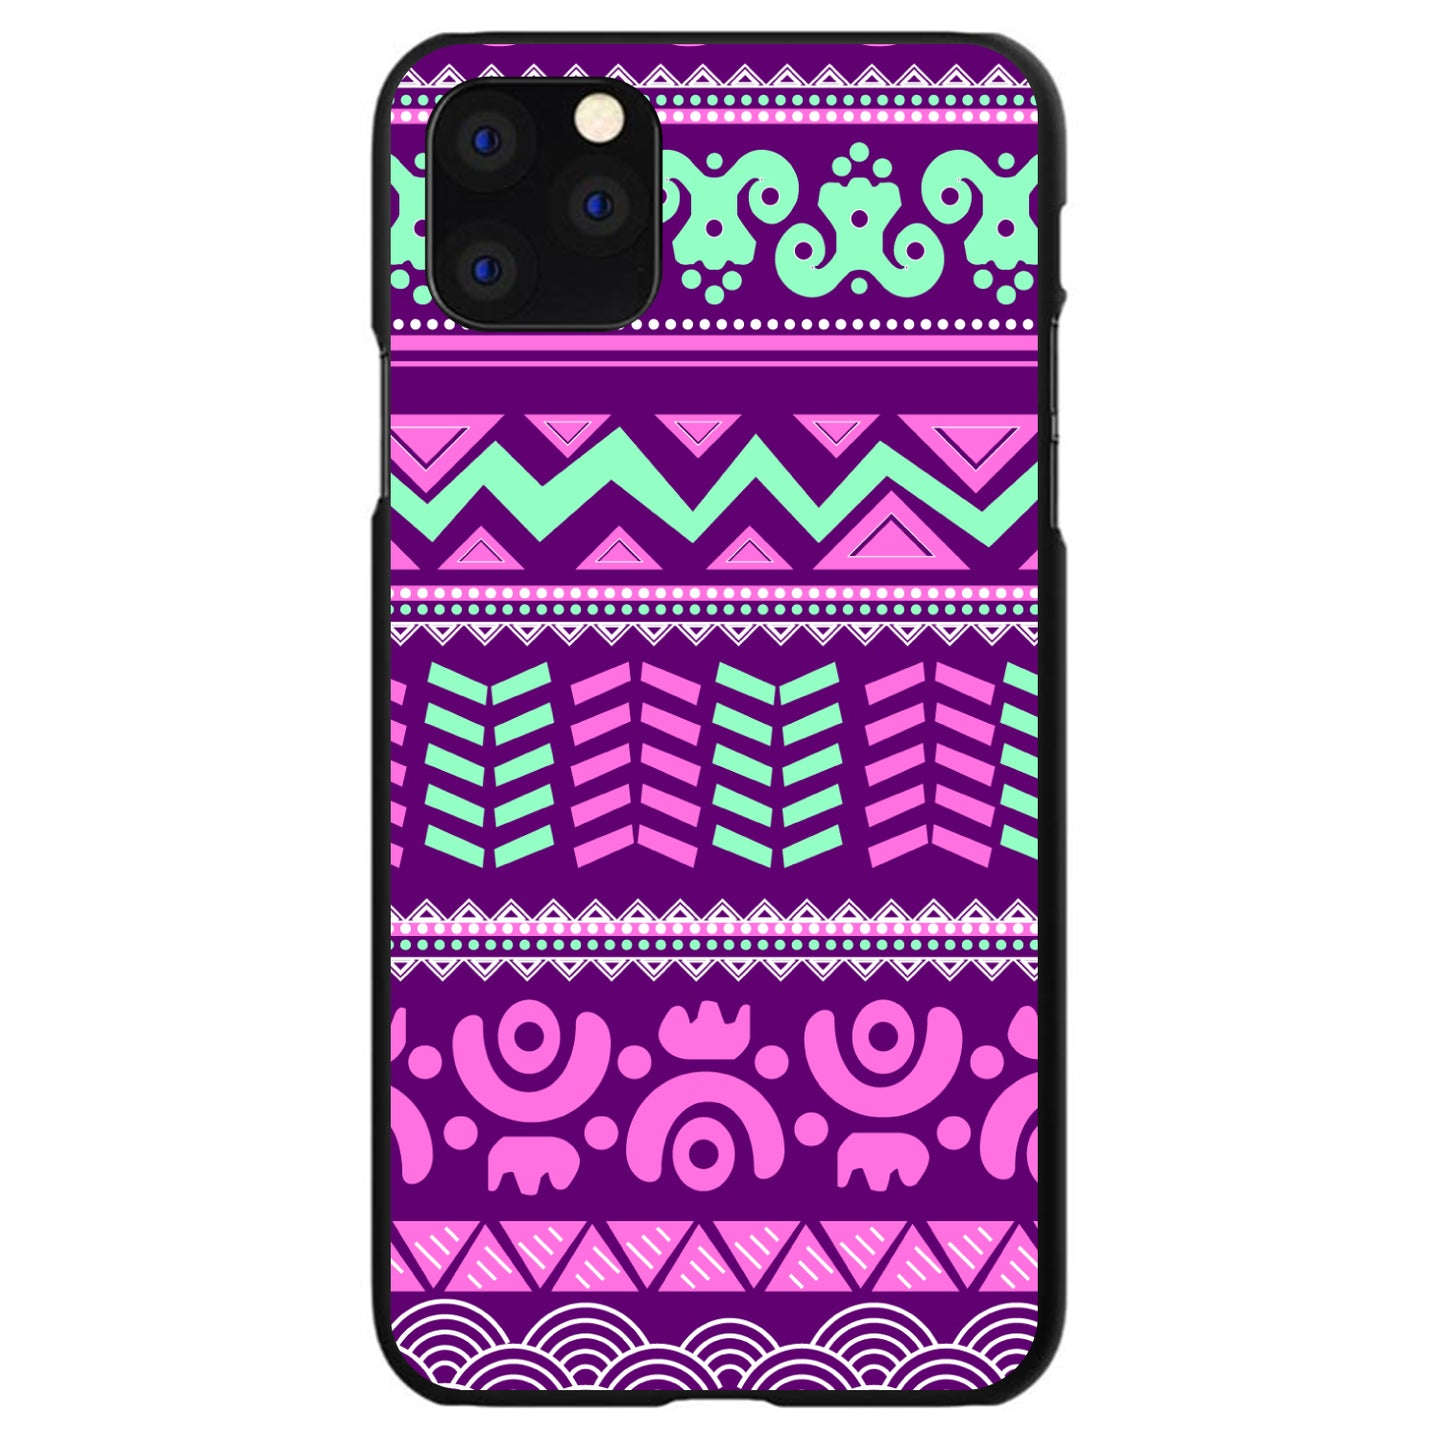 DistinctInk® Hard Plastic Snap-On Case for Apple iPhone - Pink Green Aztec Tribal